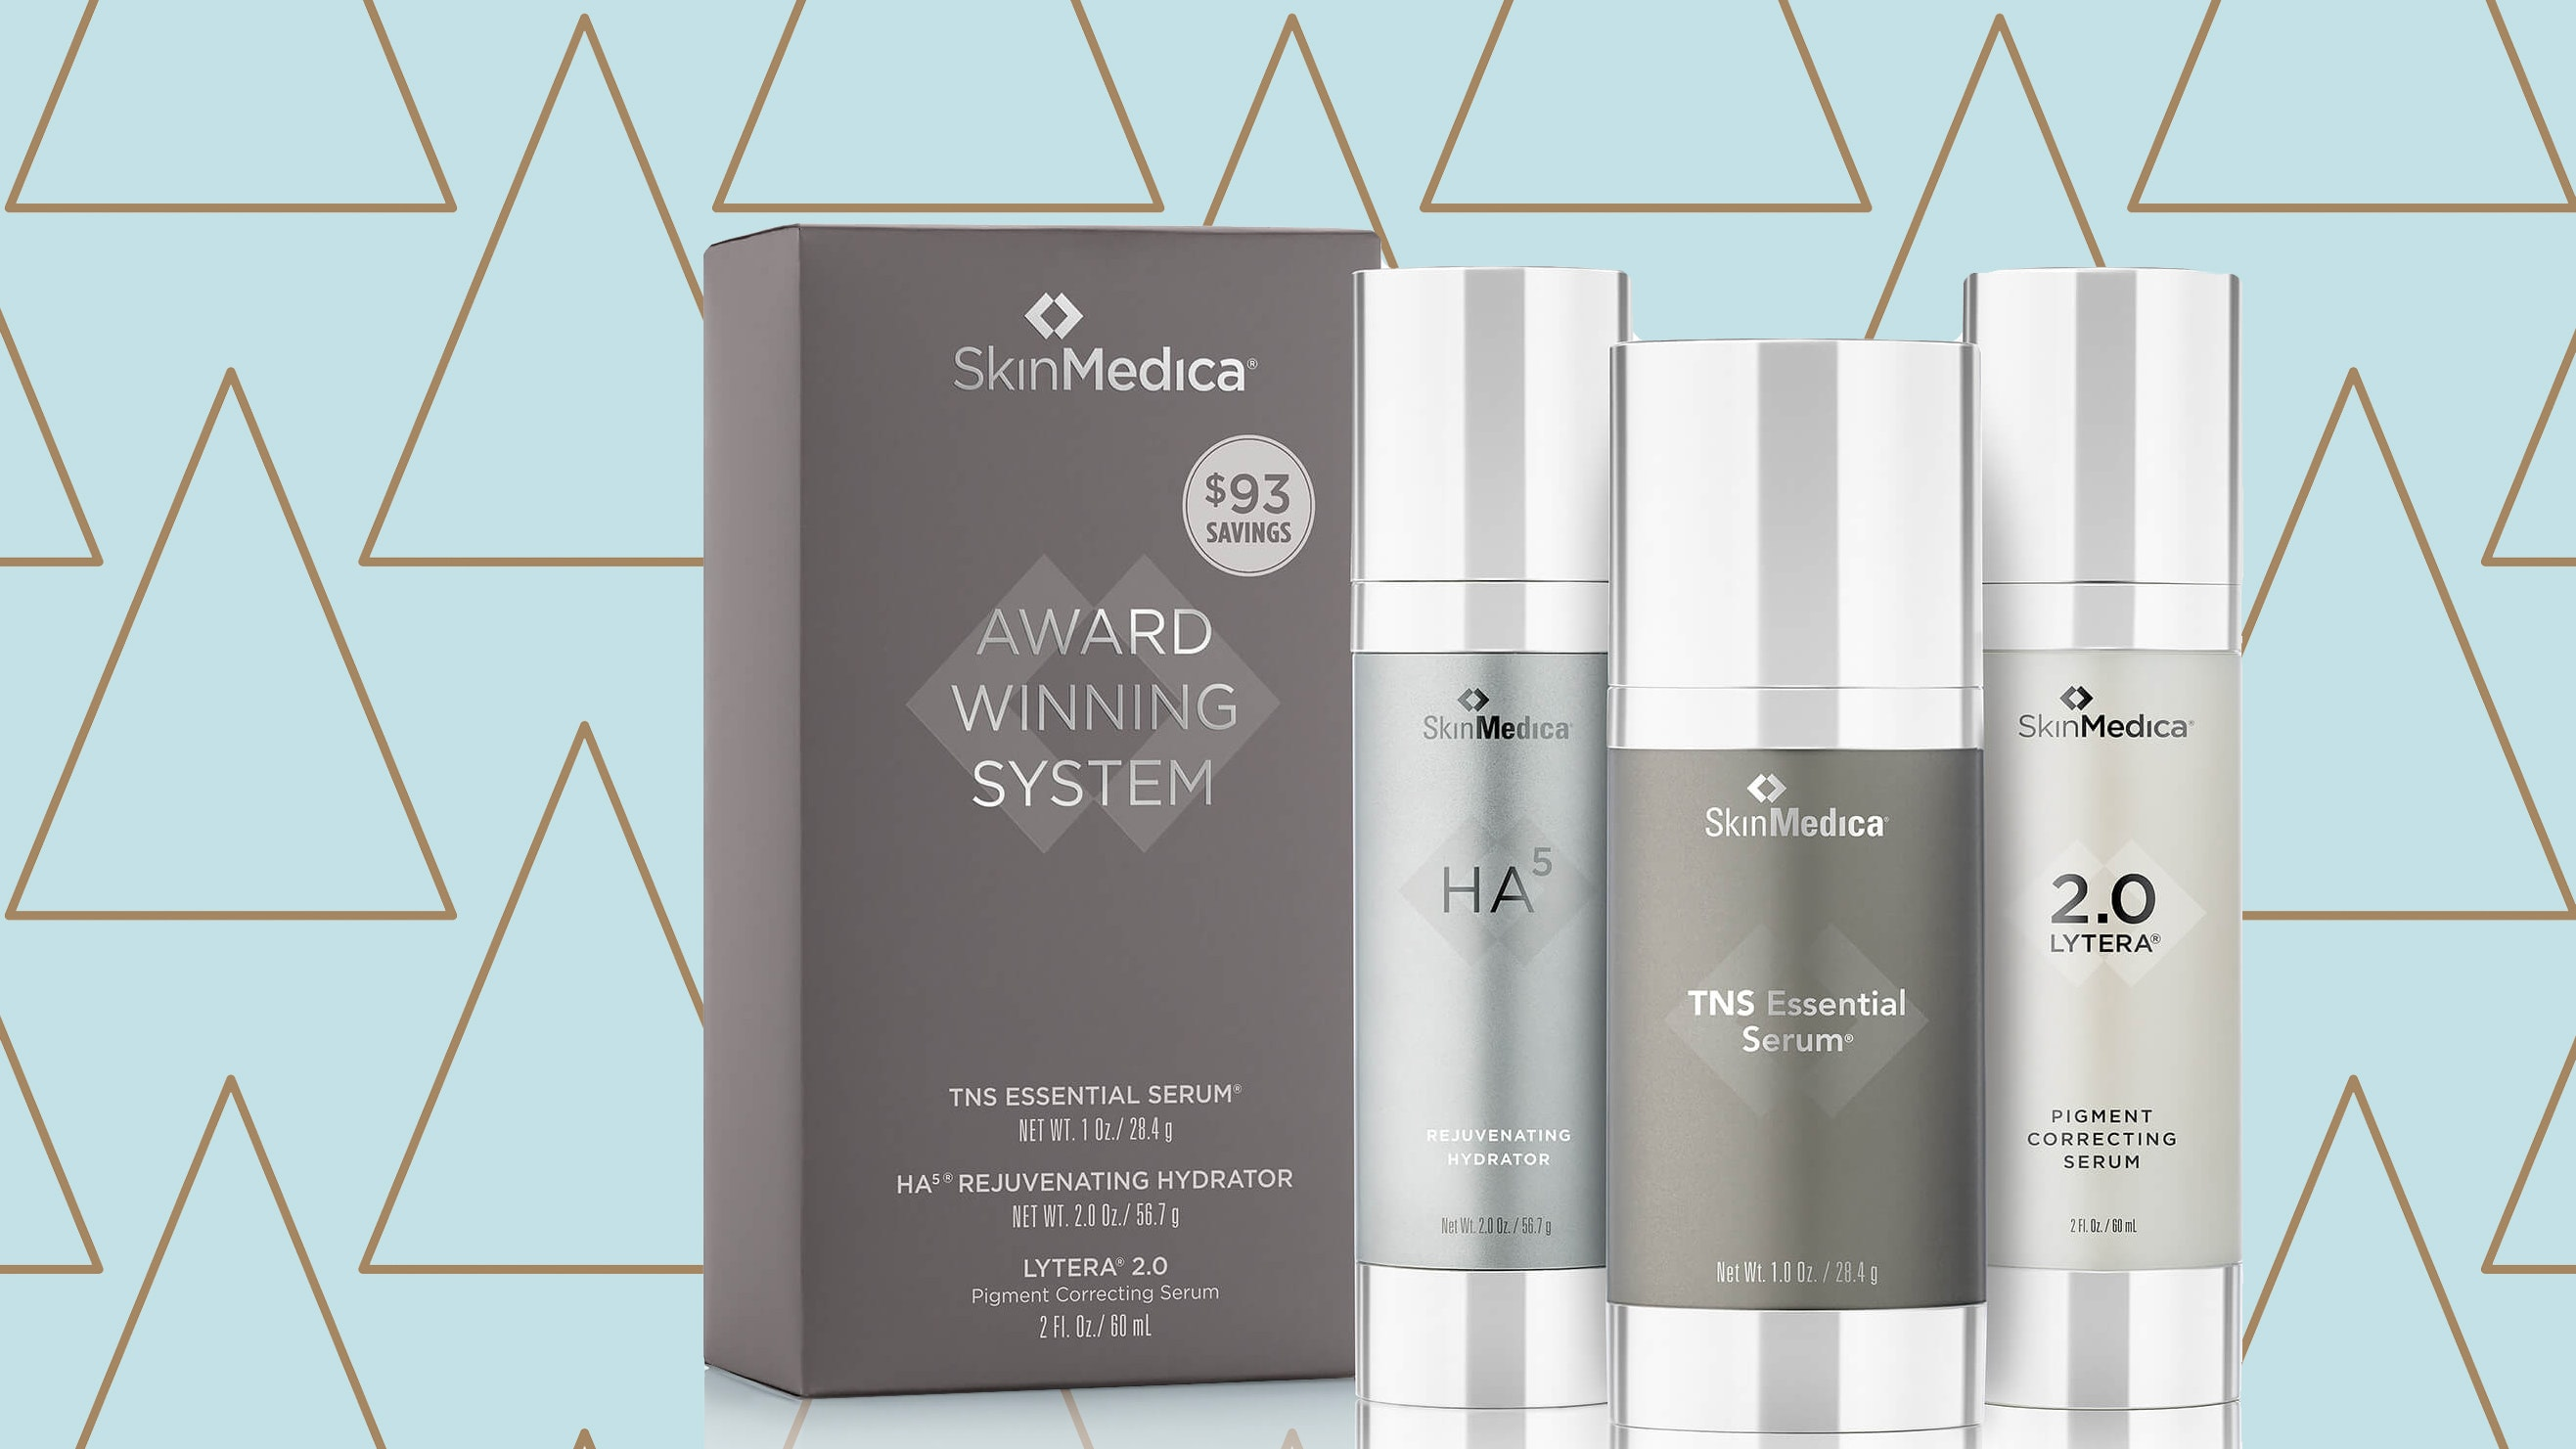 skinmedica holiday gifts